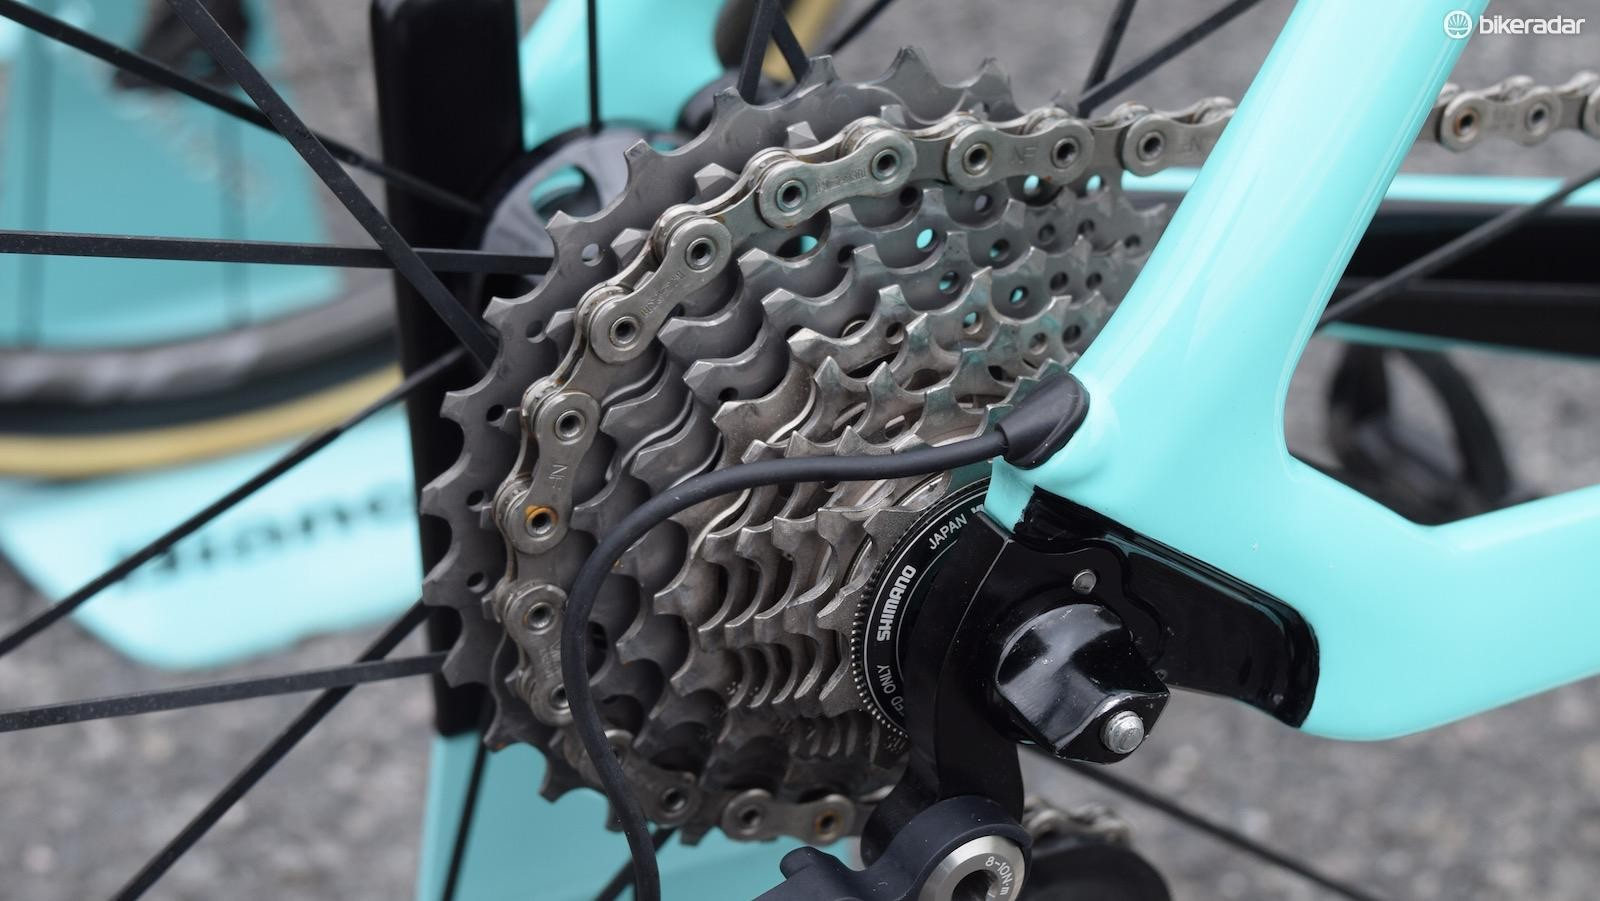 While some WorldTour riders opt for Shimano Ultegra chains and cassettes, Roglič has gone for Dura-Ace components